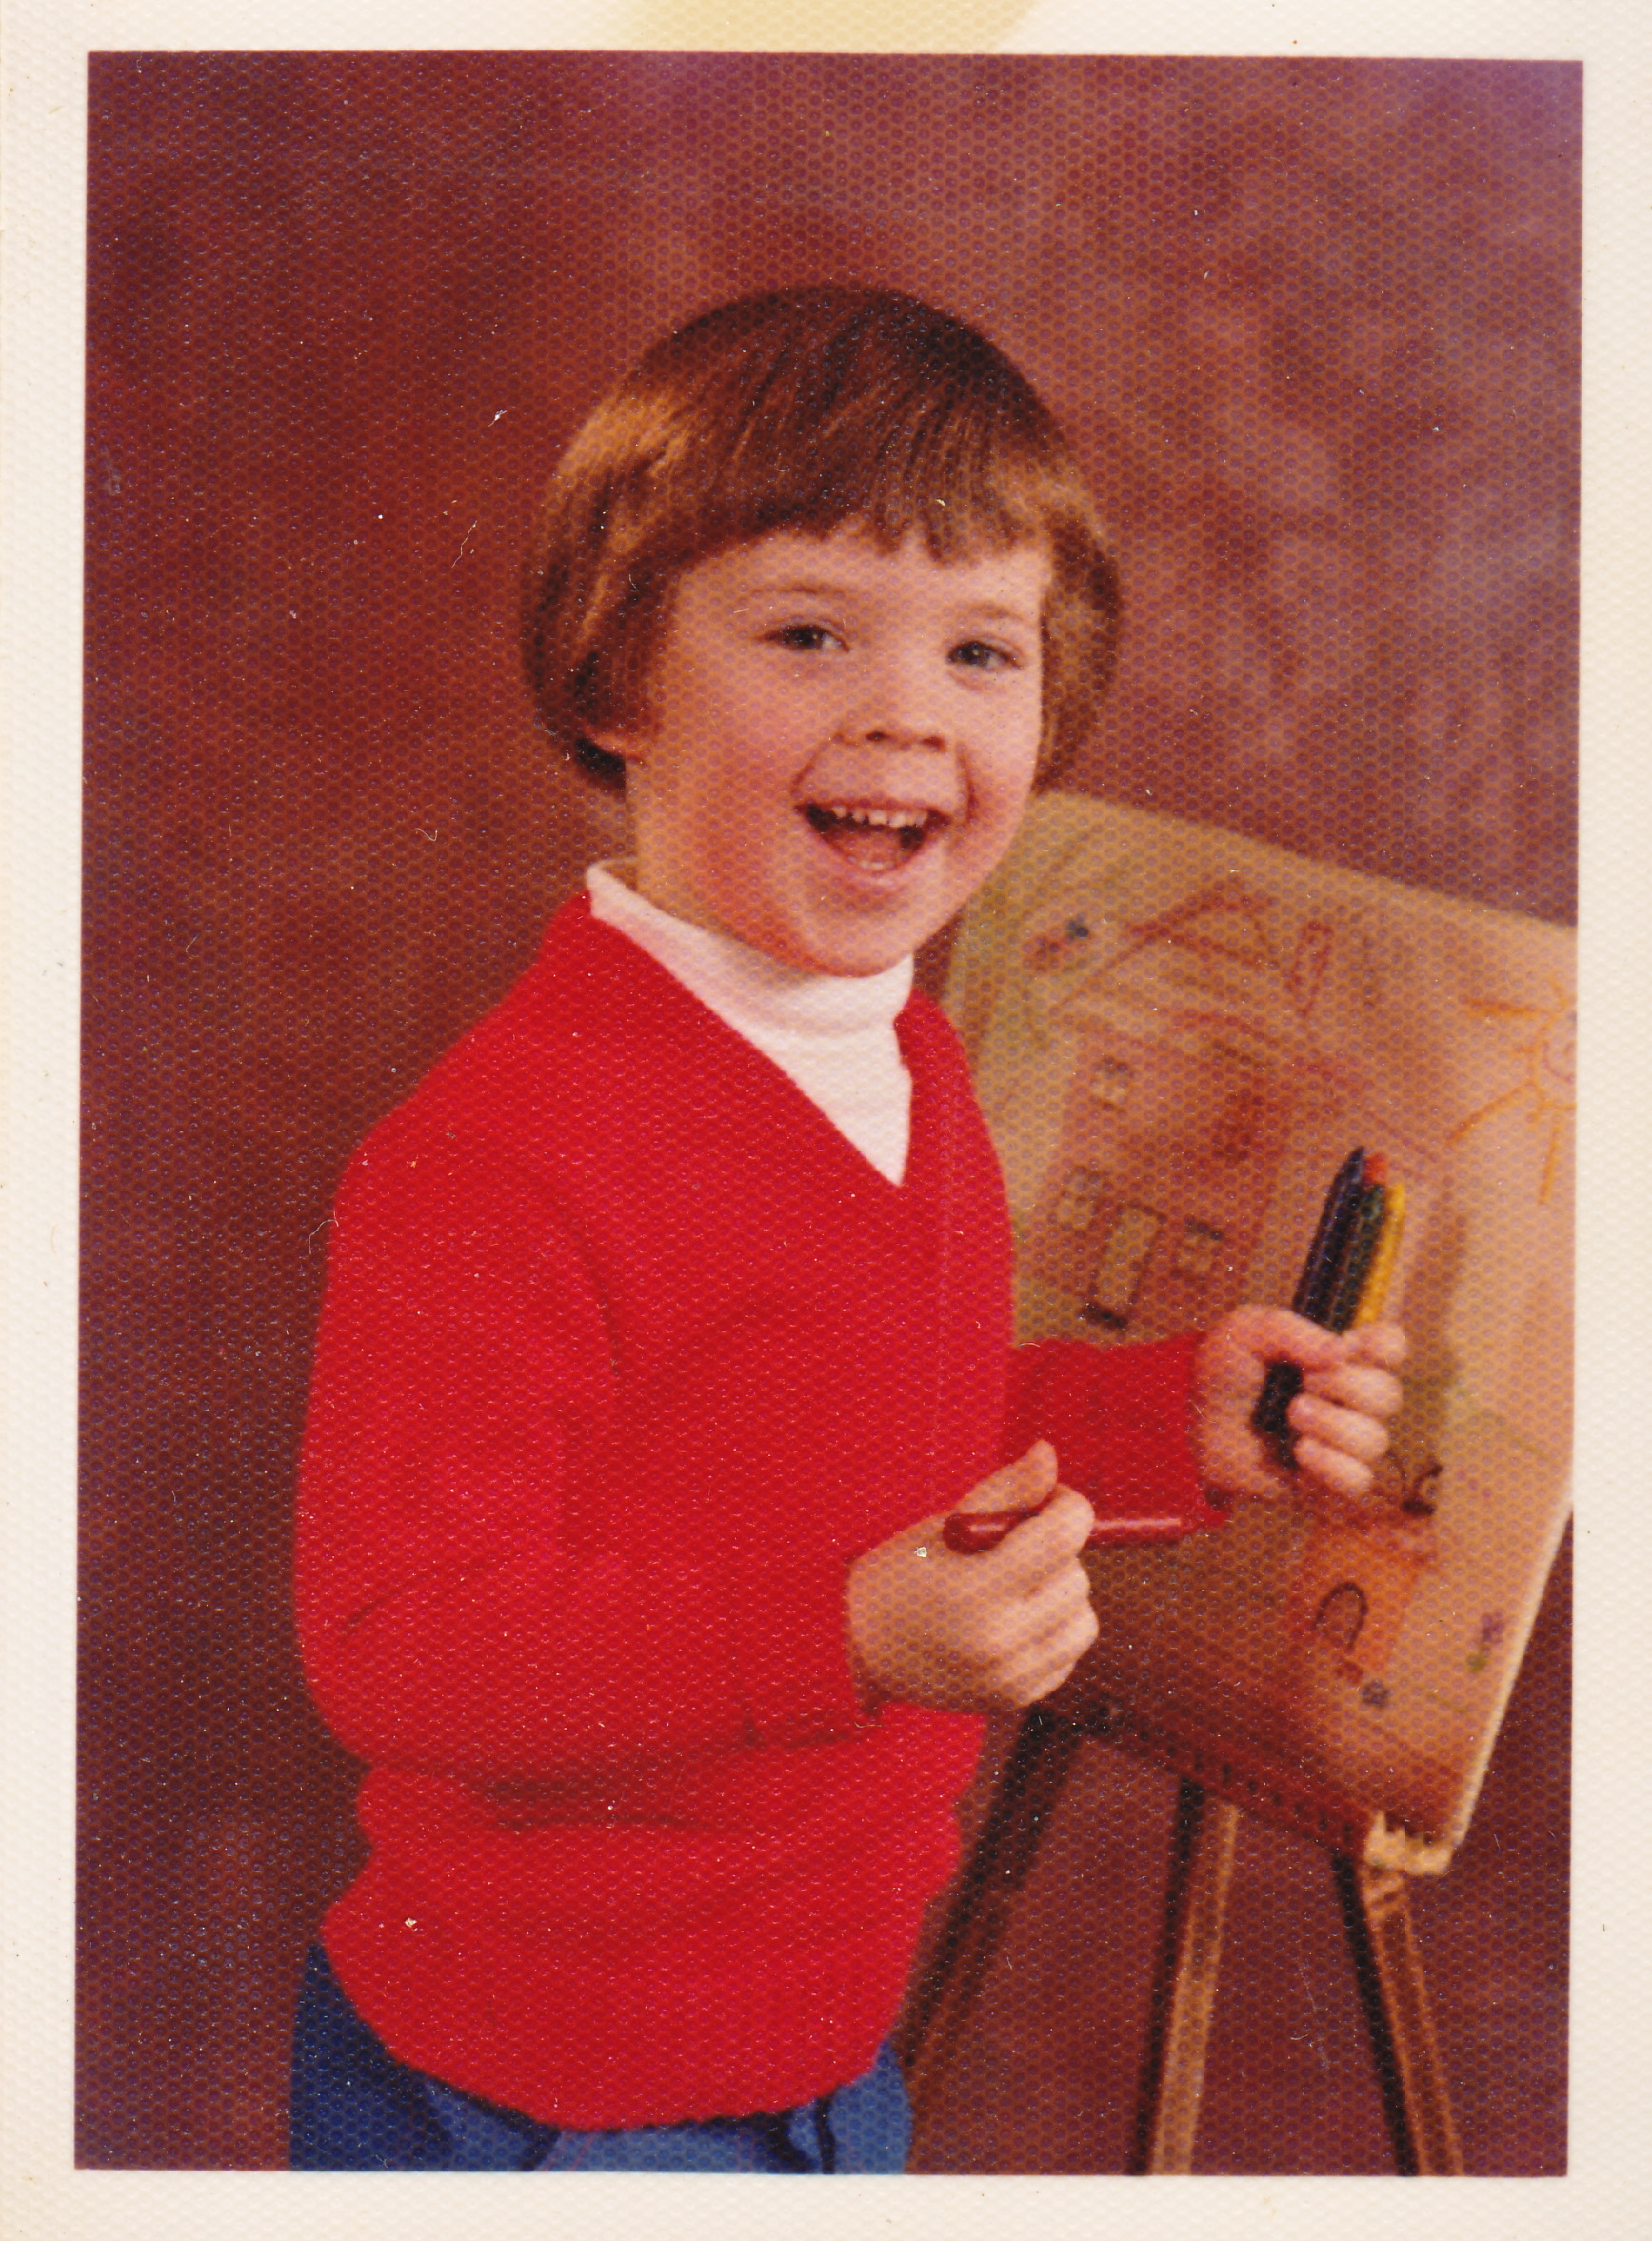 Keith MacLelland as a kid smiling at the camera with an easel and artwork behind him and crayons in his hand.